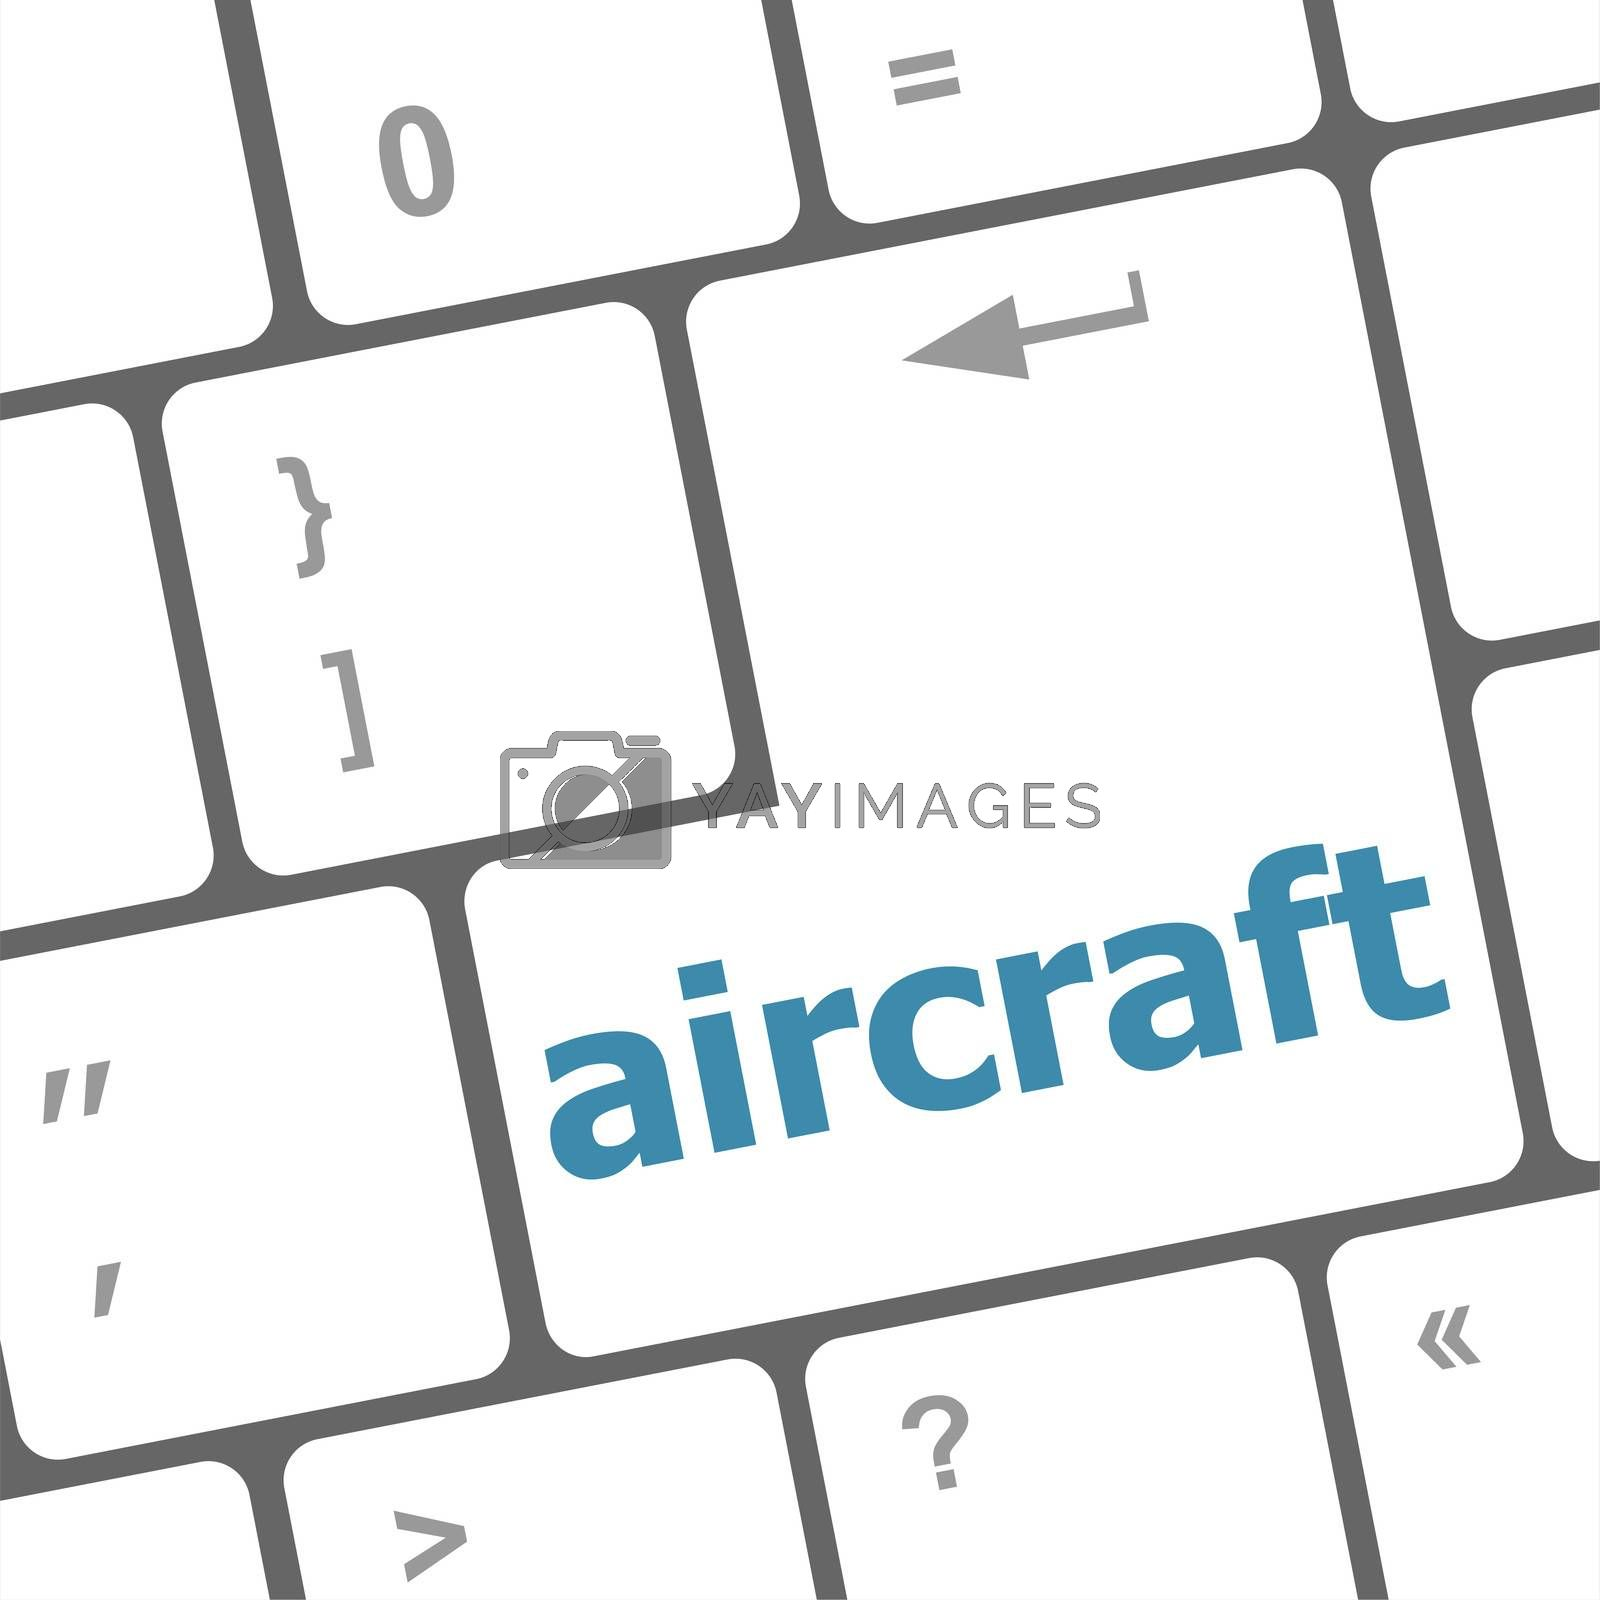 aircraft on computer keyboard key enter button